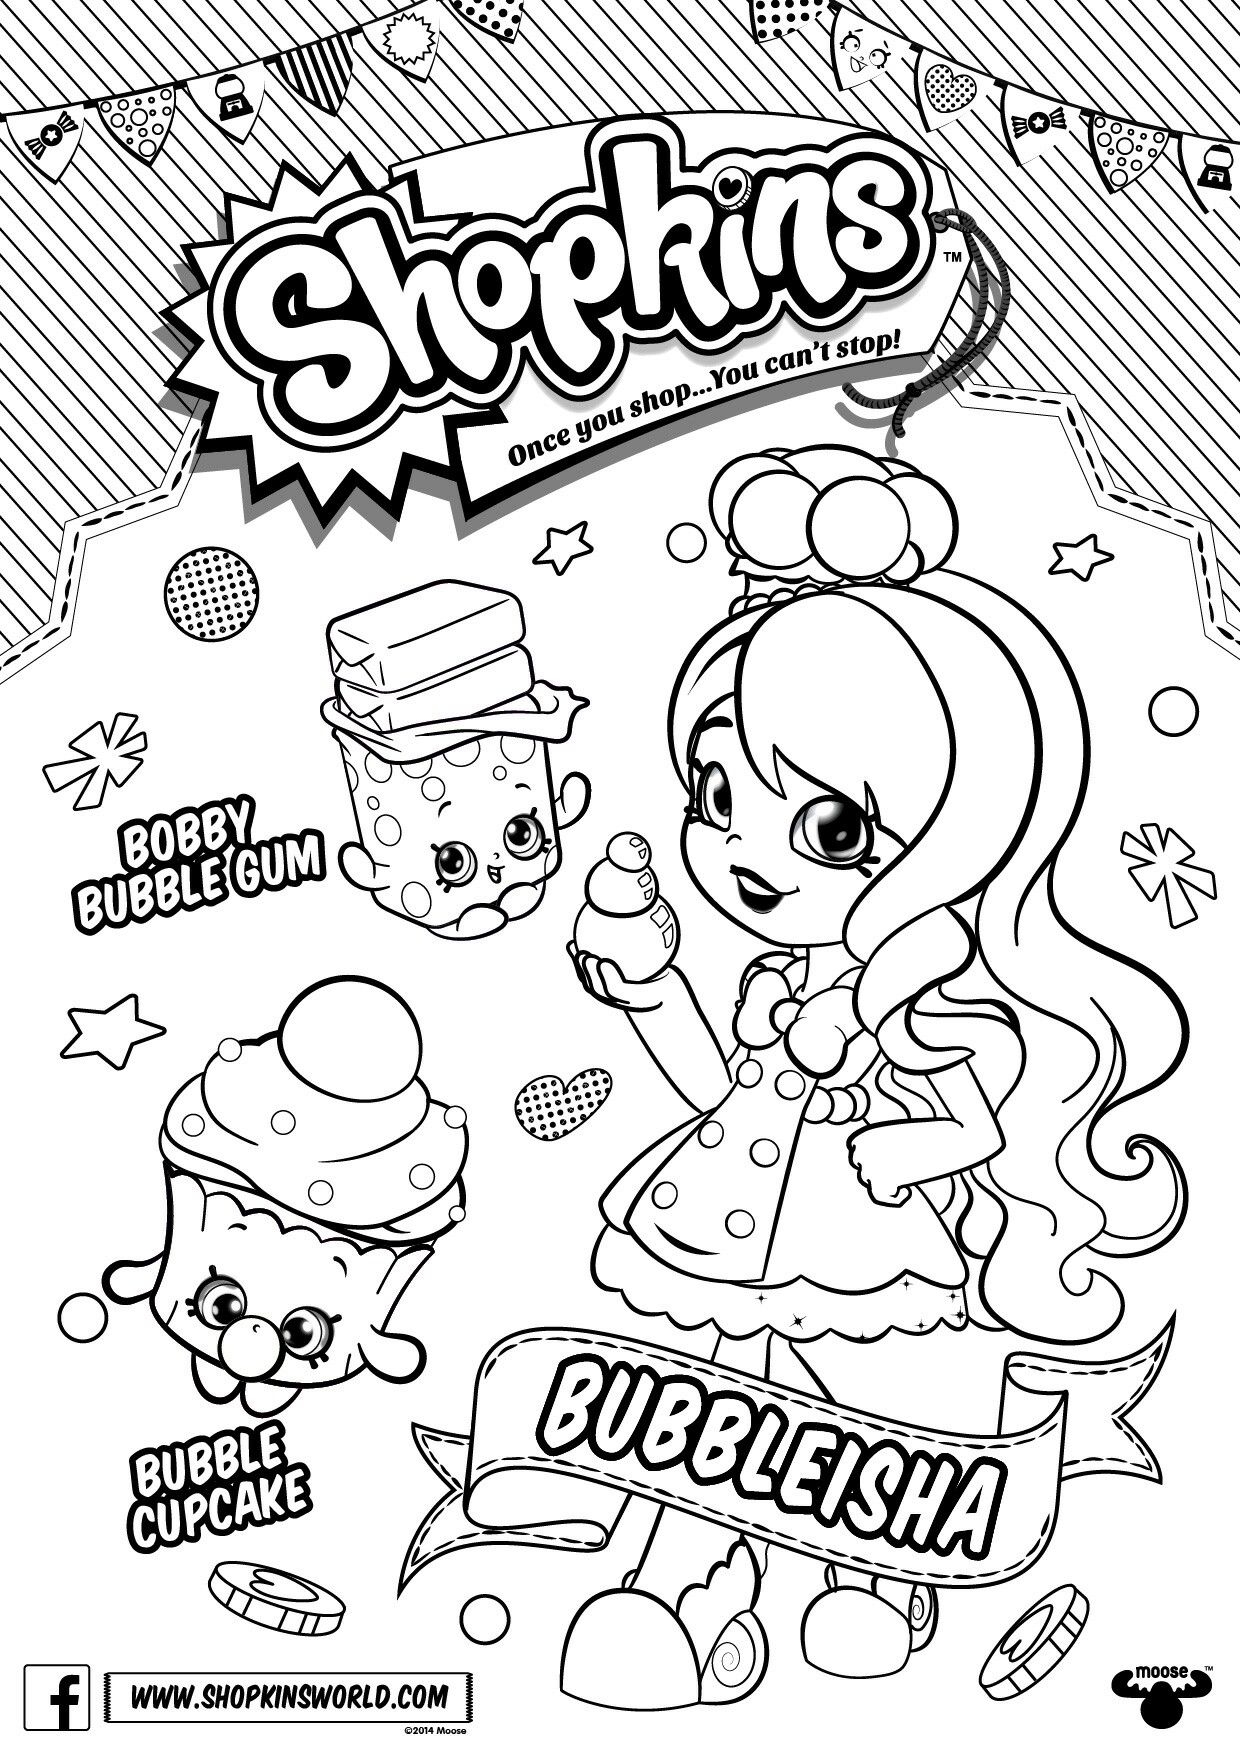 Pin By Candi On Shopkins Shopkins Colouring Pages Shopkins Coloring Pages Free Printable Manga Coloring Book